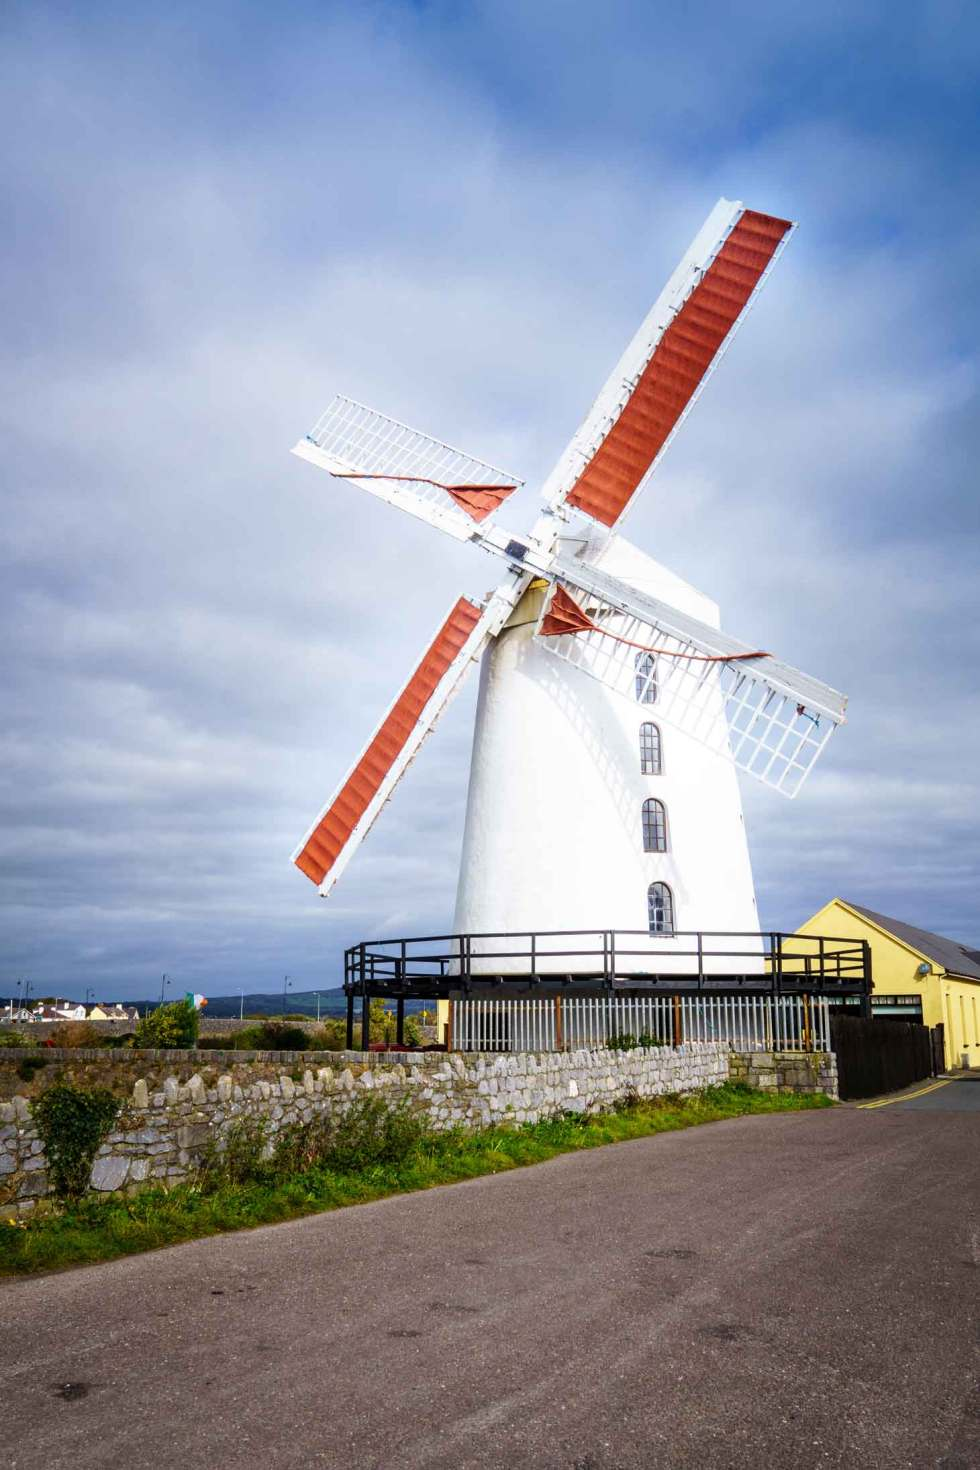 Blennerville Windmill located in the Republic of Ireland in Kerry County is a must see family site